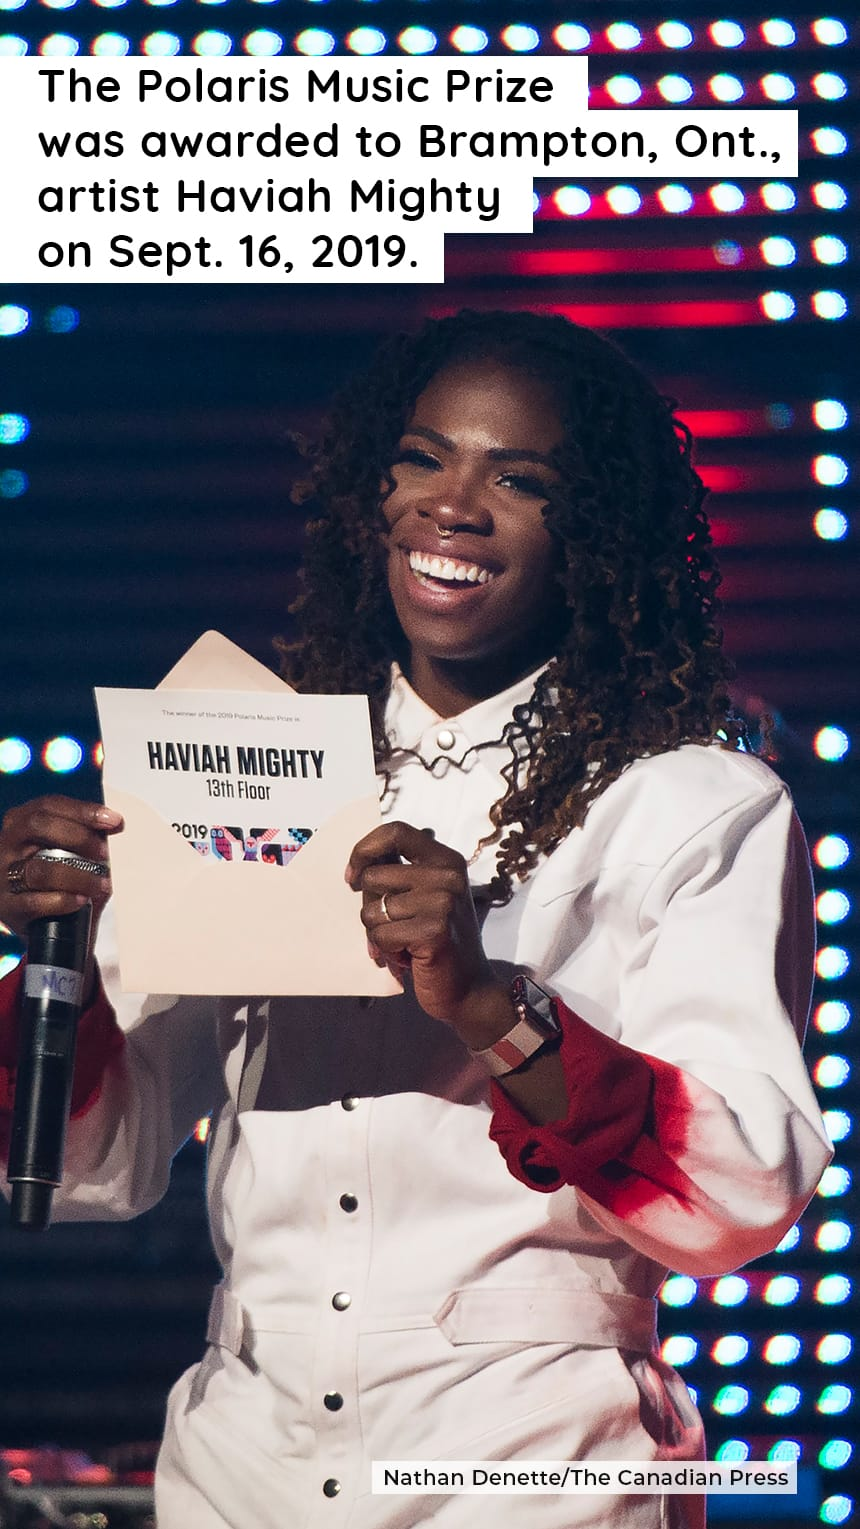 TEXT:  The Polaris Music Prize was awarded to Brampton, Ont., artist Haviah Mighty on Sept. 16, 2019. IMAGE: A smiling woman holds an open envelope.